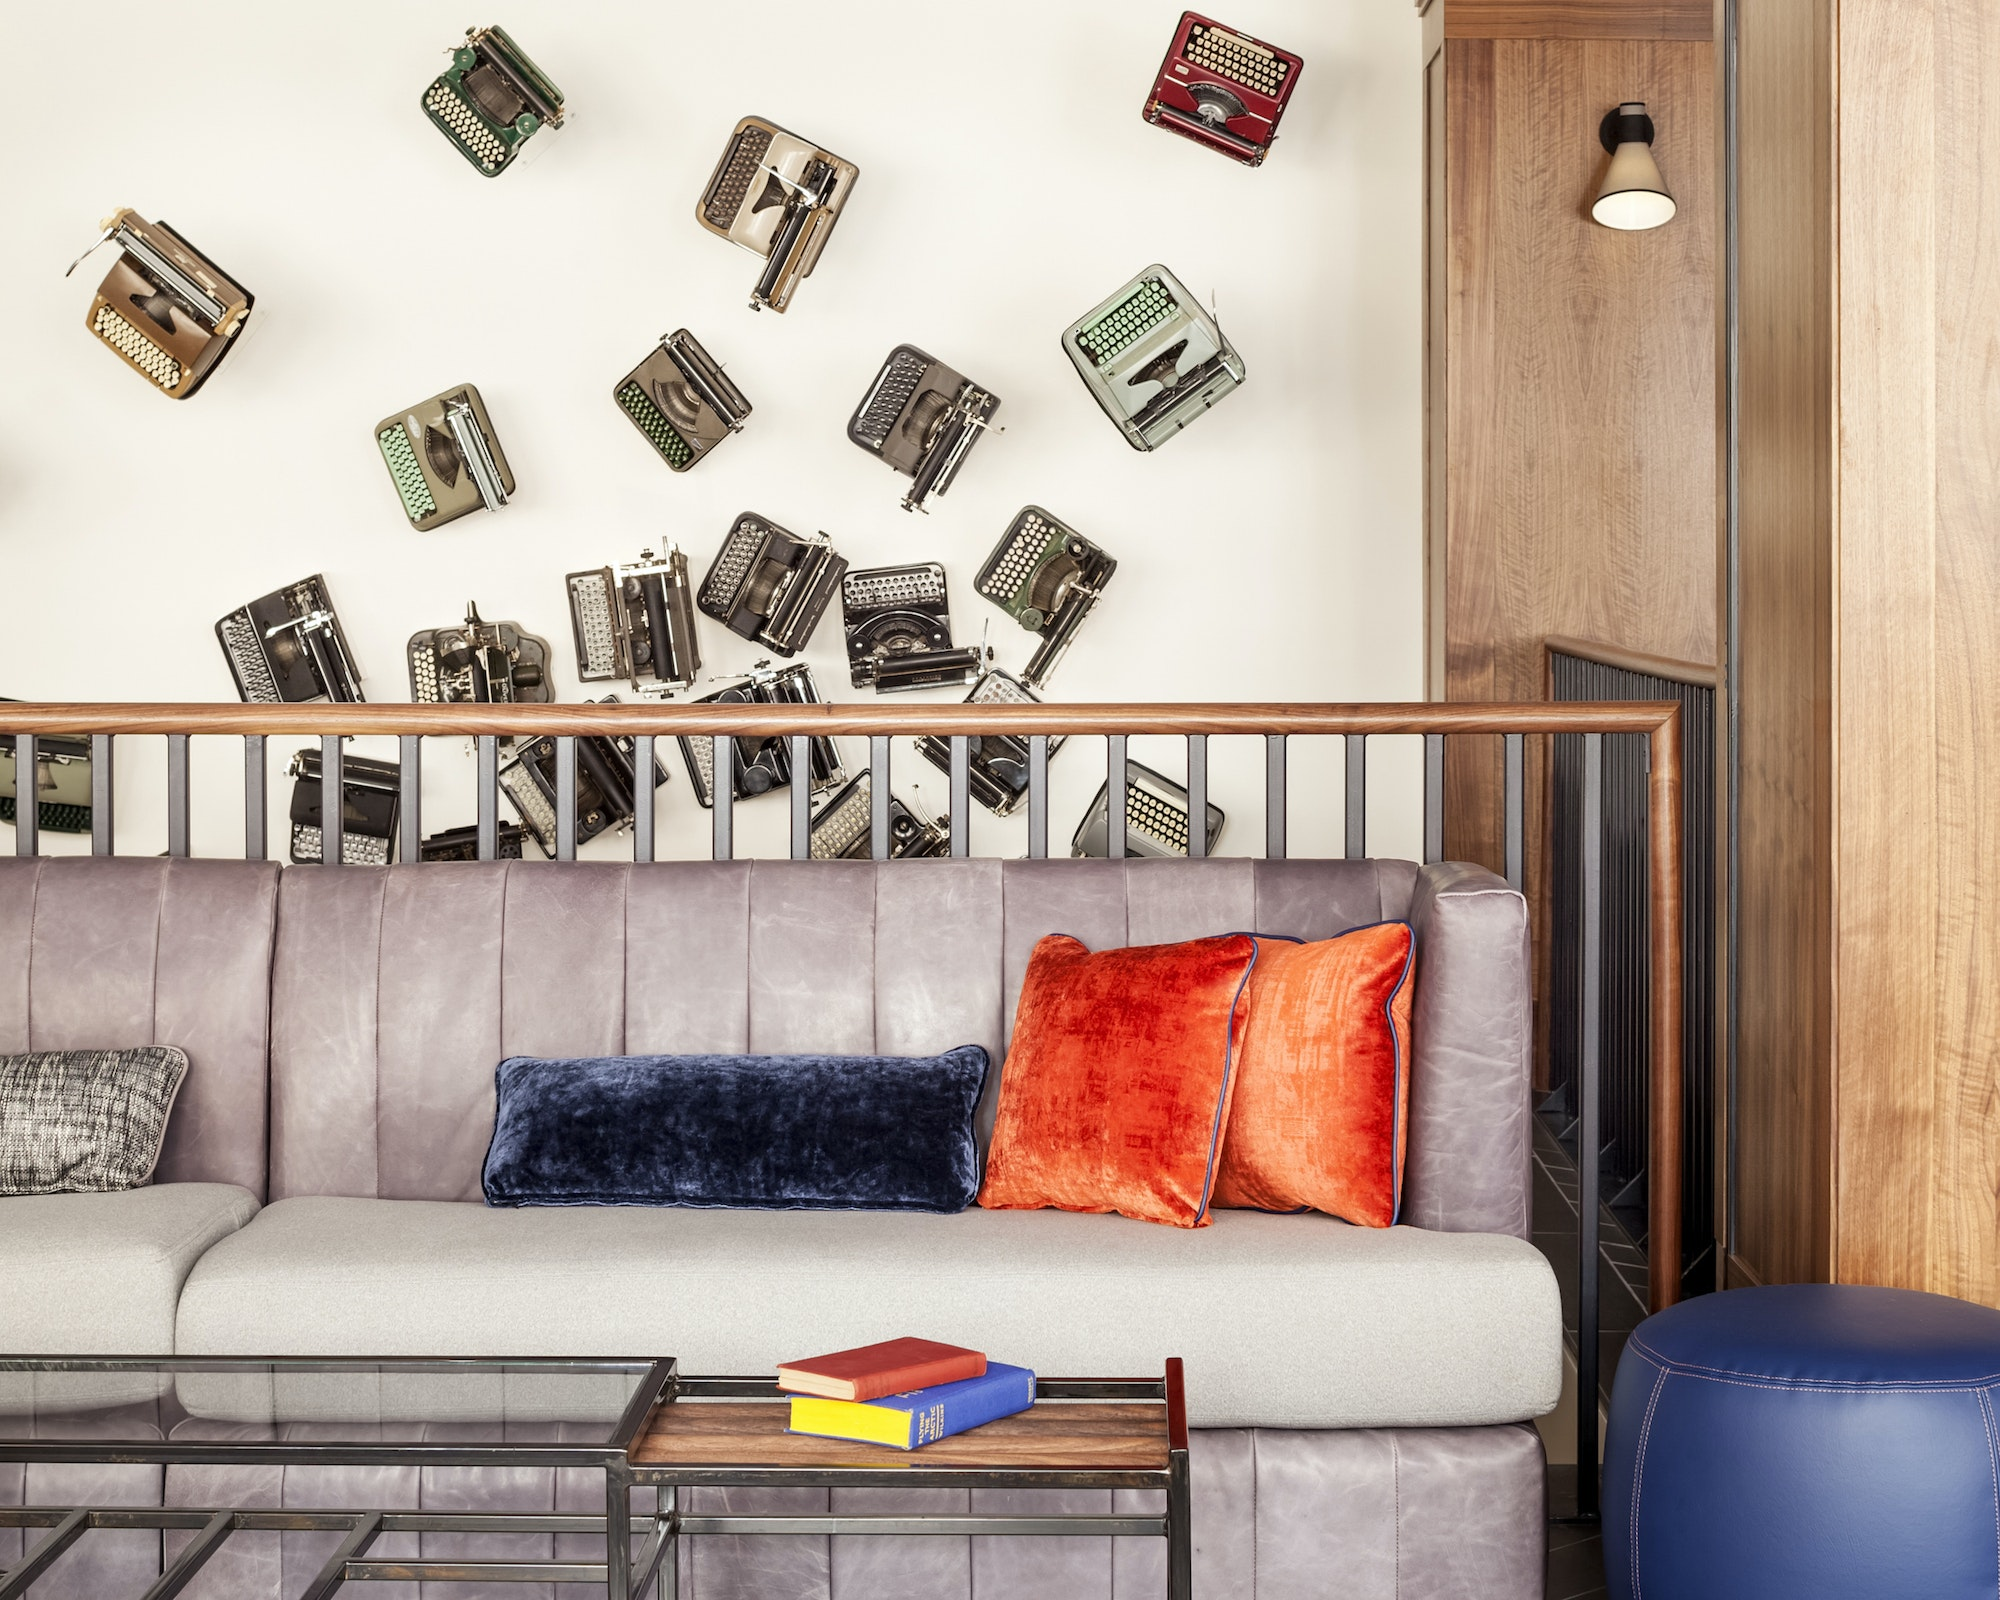 The editorial-inspired interiors of the Press Hotel channel the building's past as a newspaper plant.